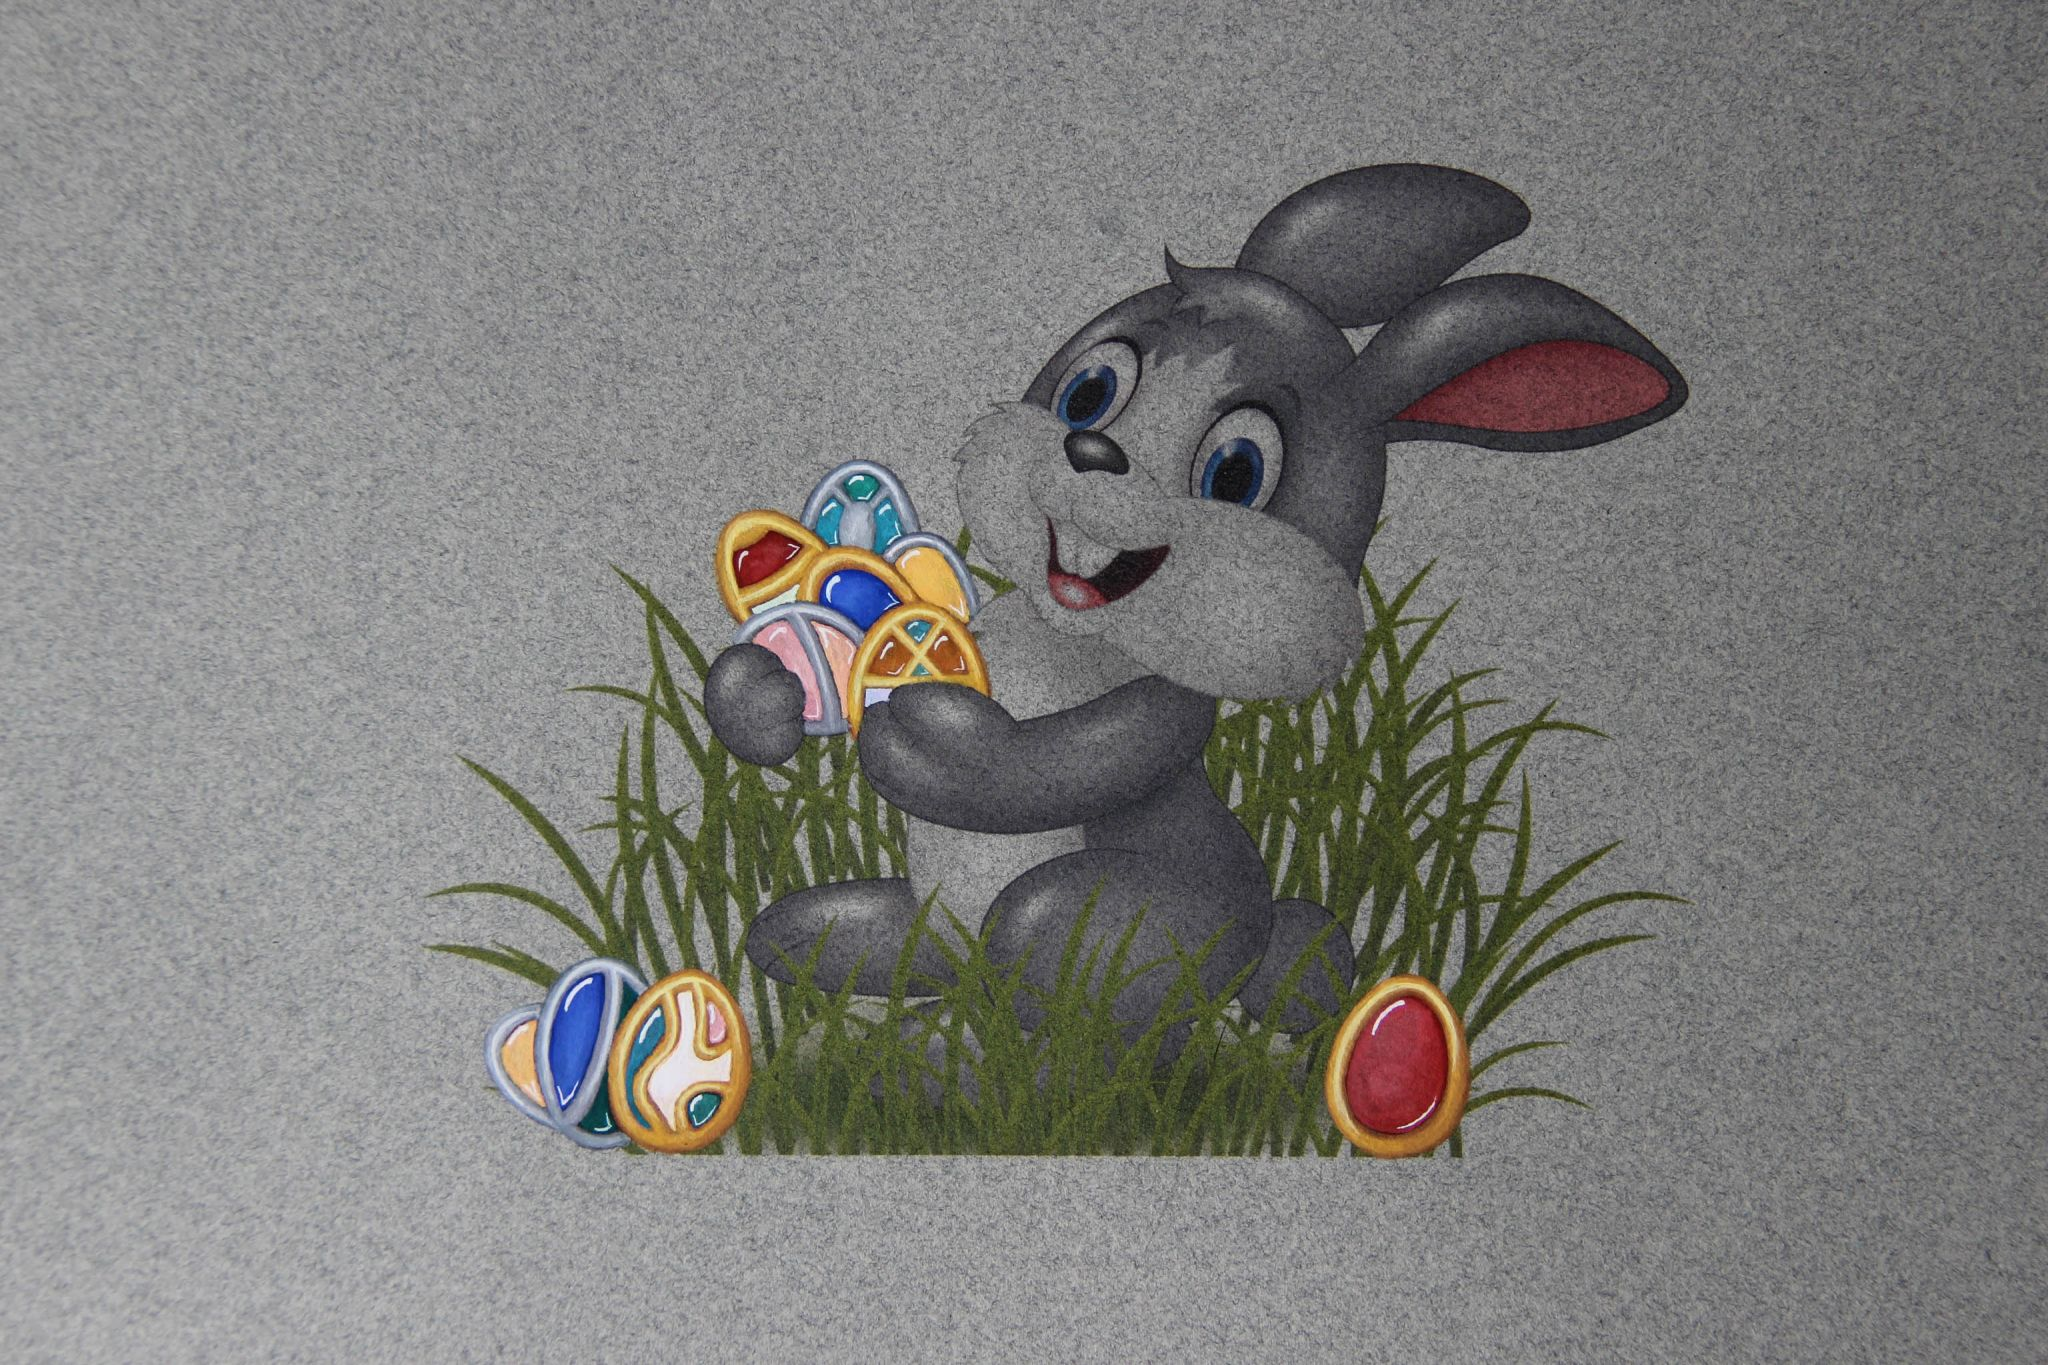 celebrations easter day 2018 jewelry painting